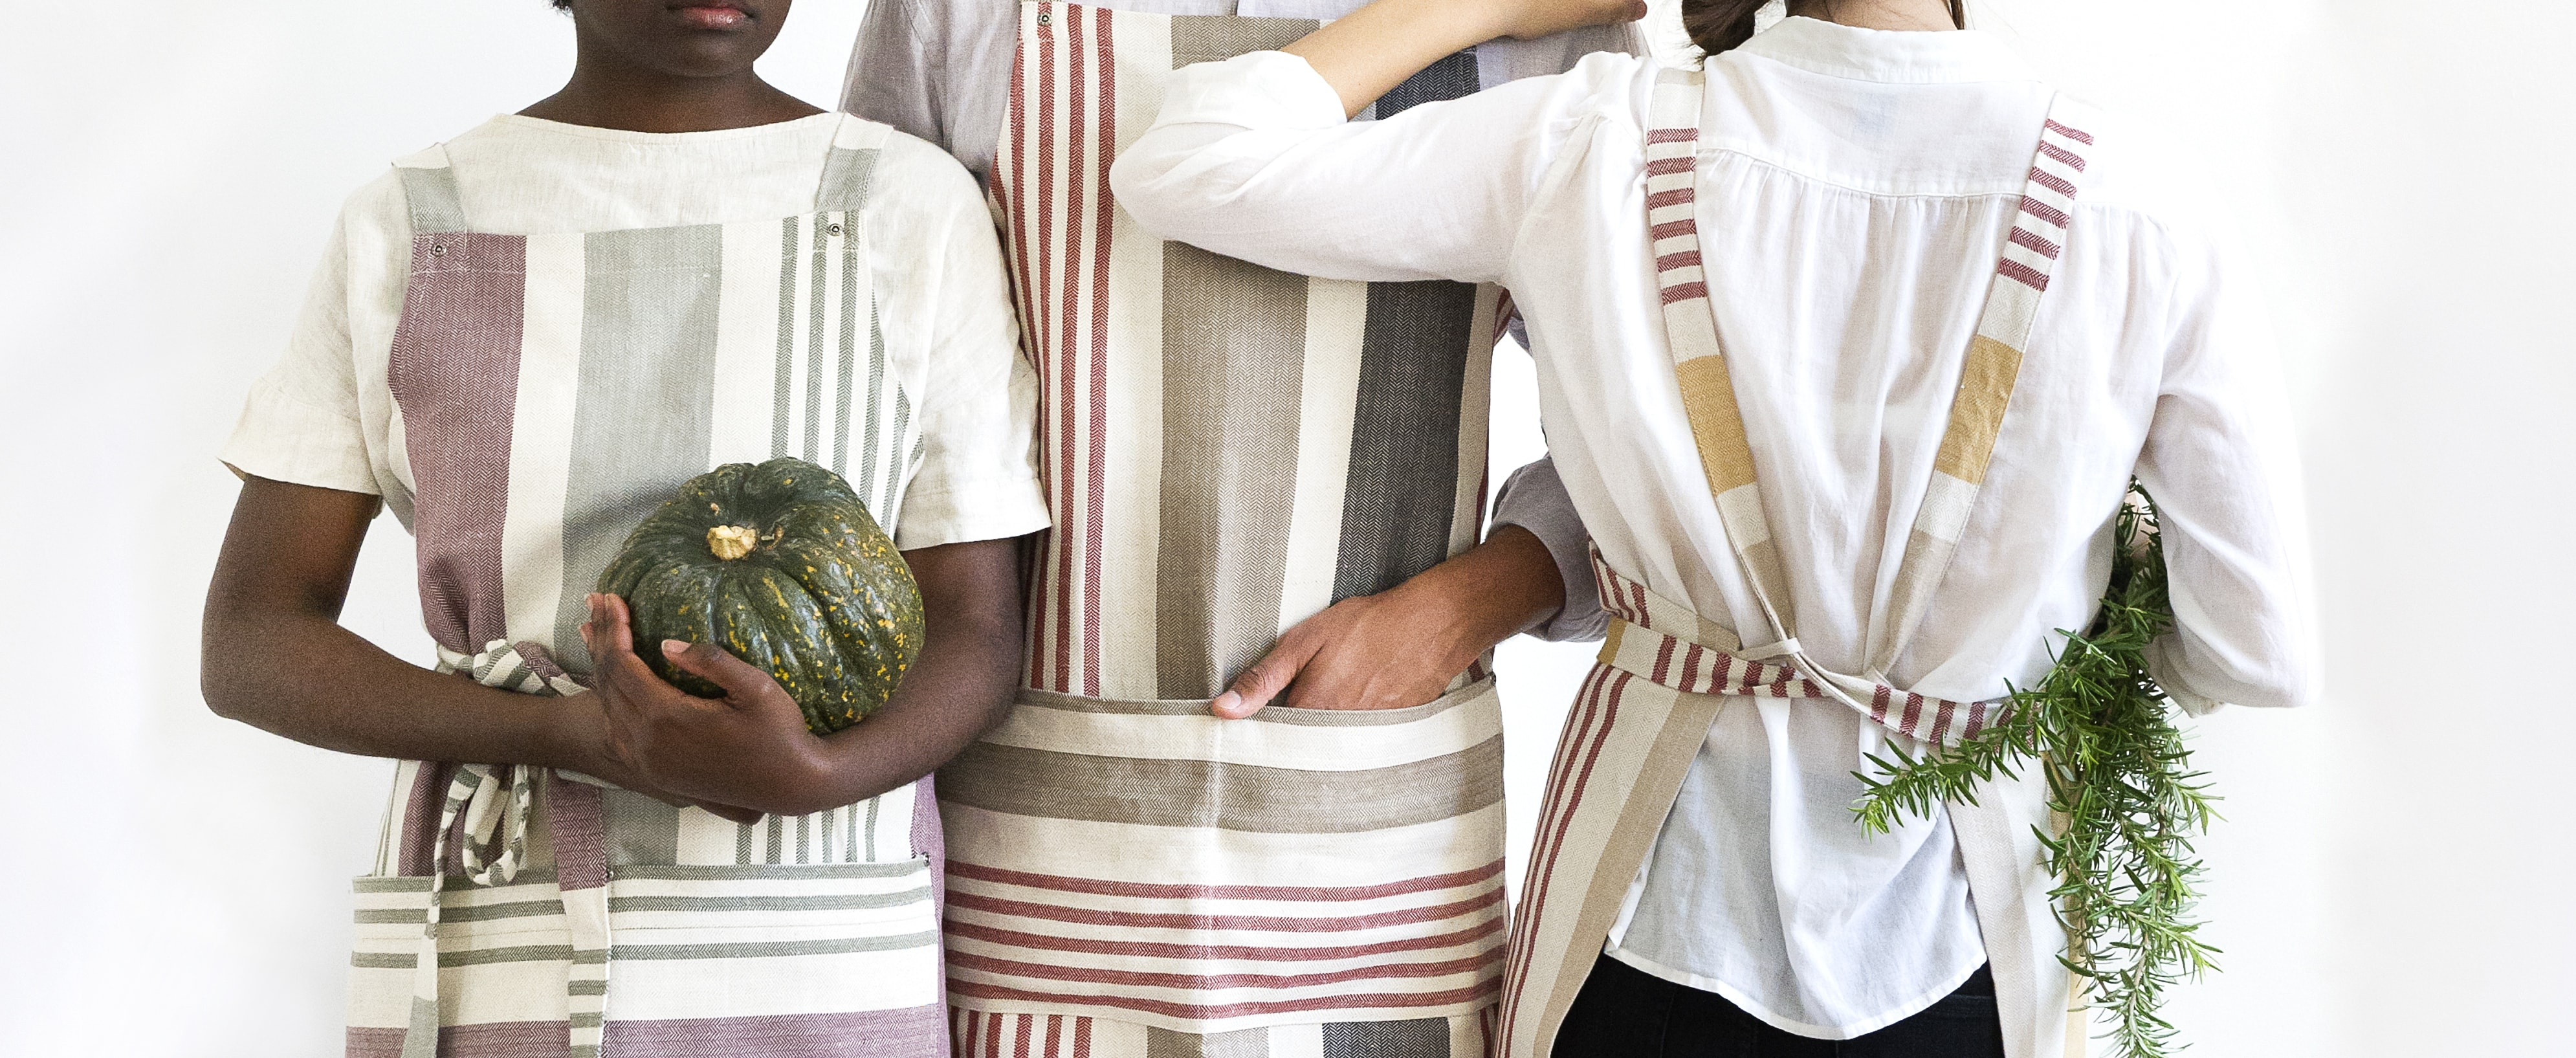 The Mungo Chefs Apron, designed, woven and made in South Africa